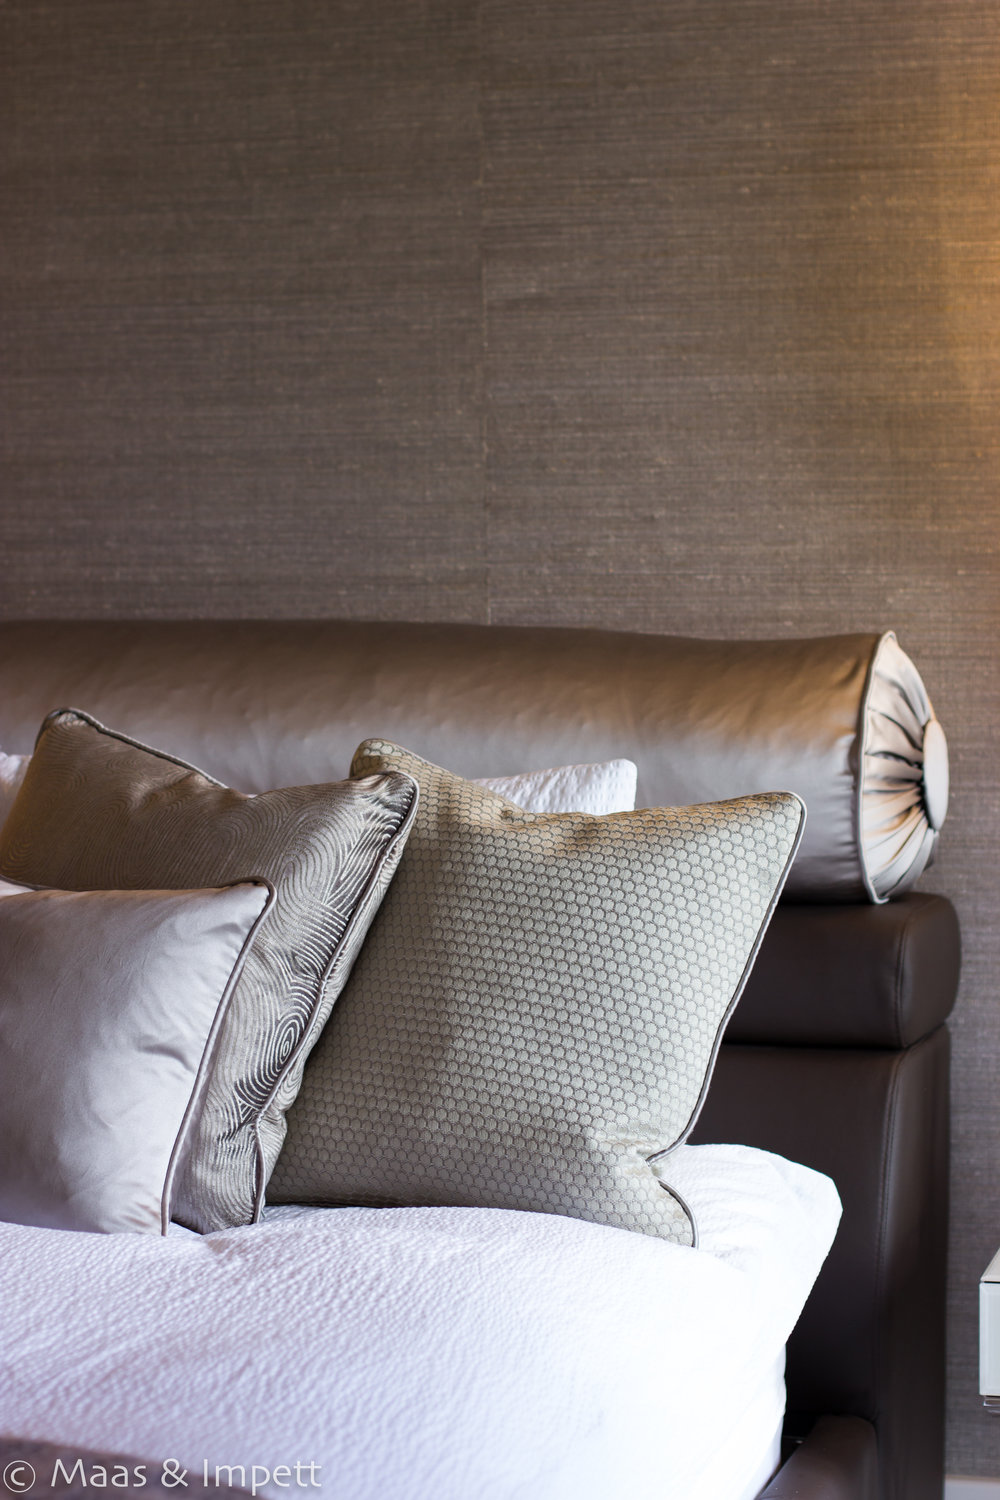 Bedroom upholstery, Hampshire based interior designers, Maas & Impett